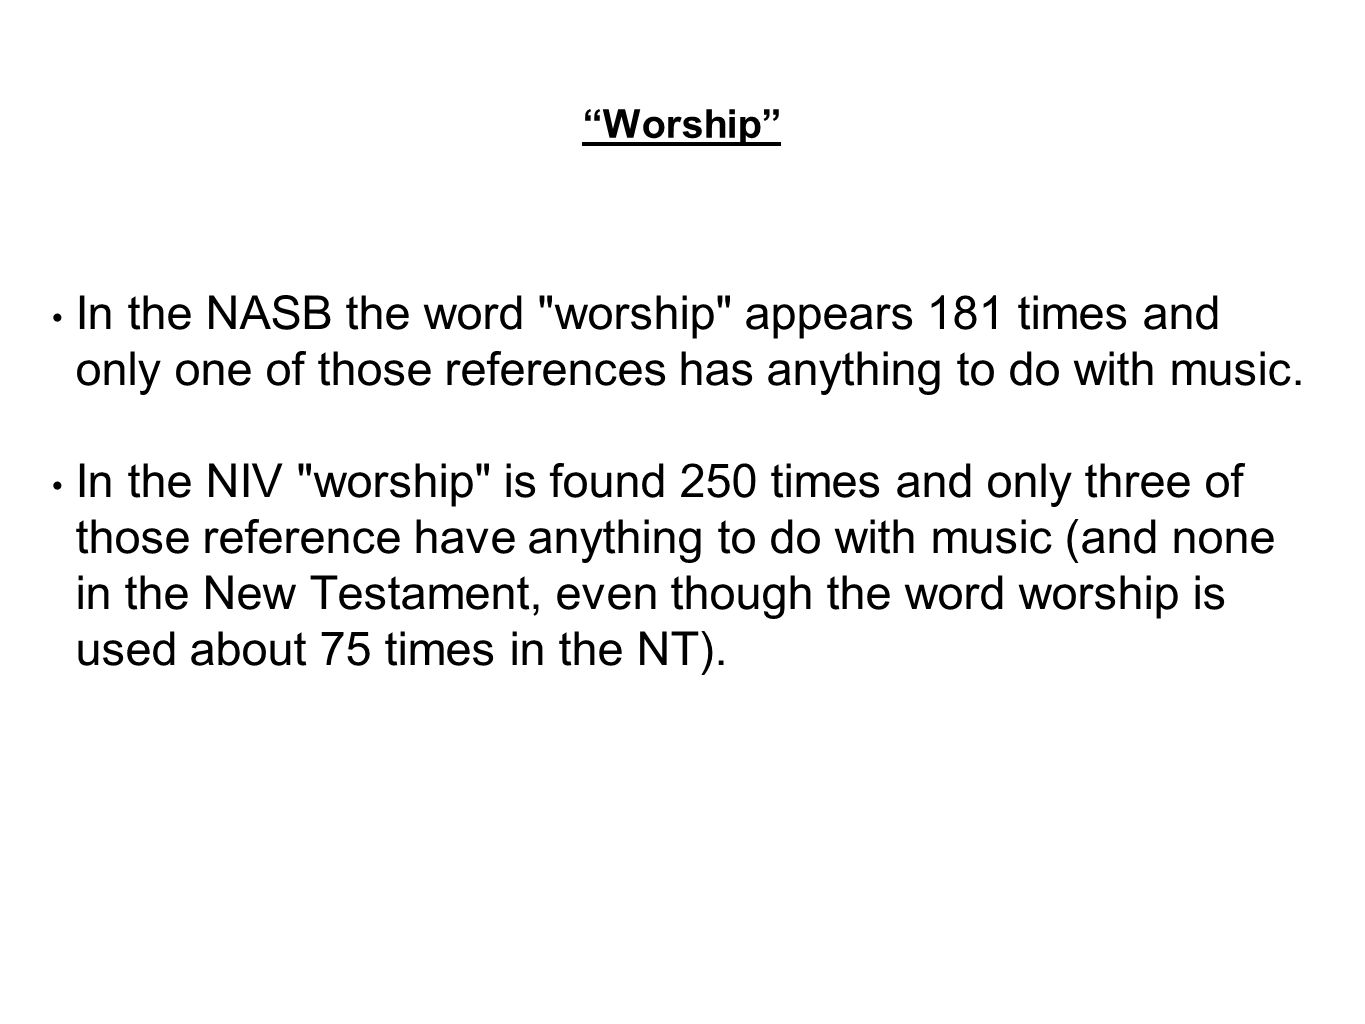 Worship In the NASB the word worship appears 181 times and only one of those references has anything to do with music.